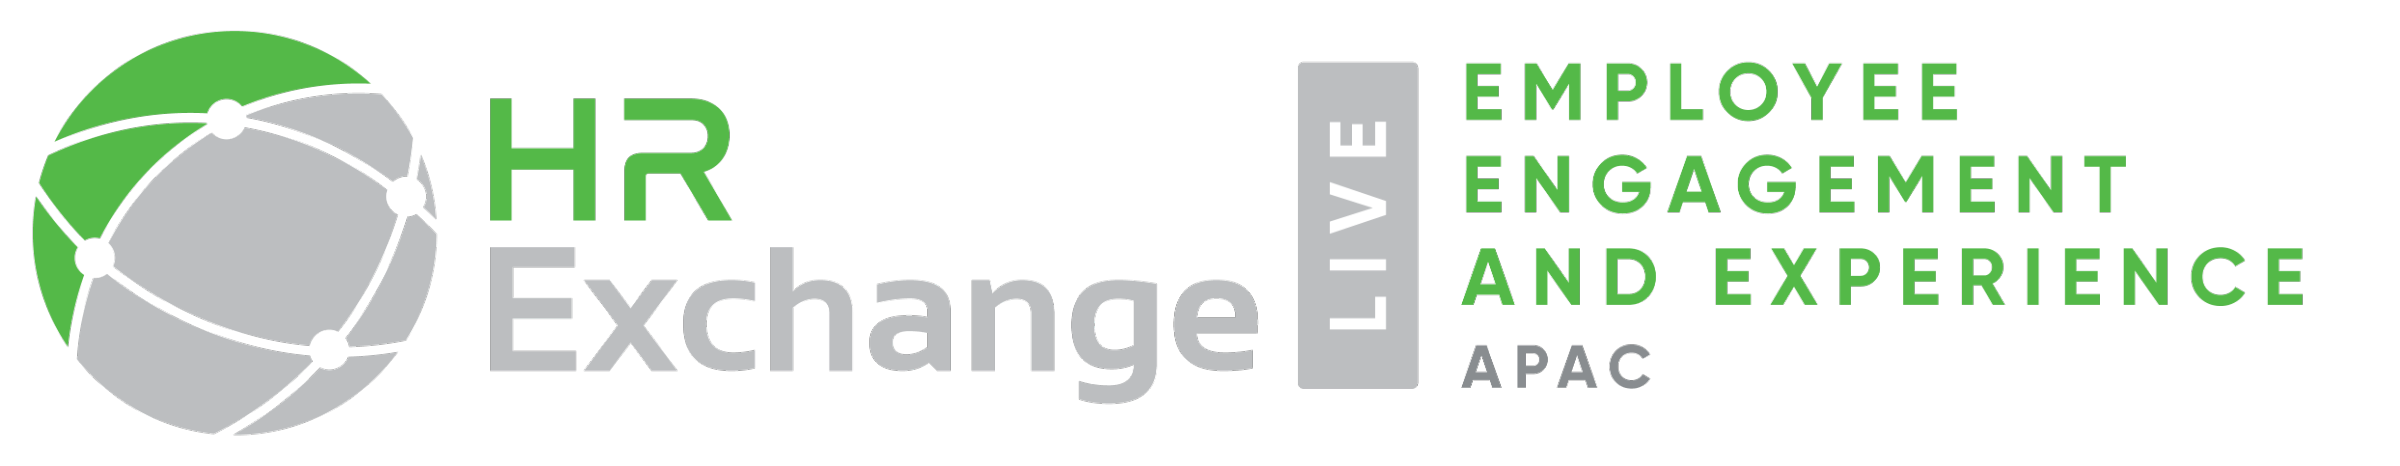 HR Exchange Live: Employee Engagement and Experience APAC